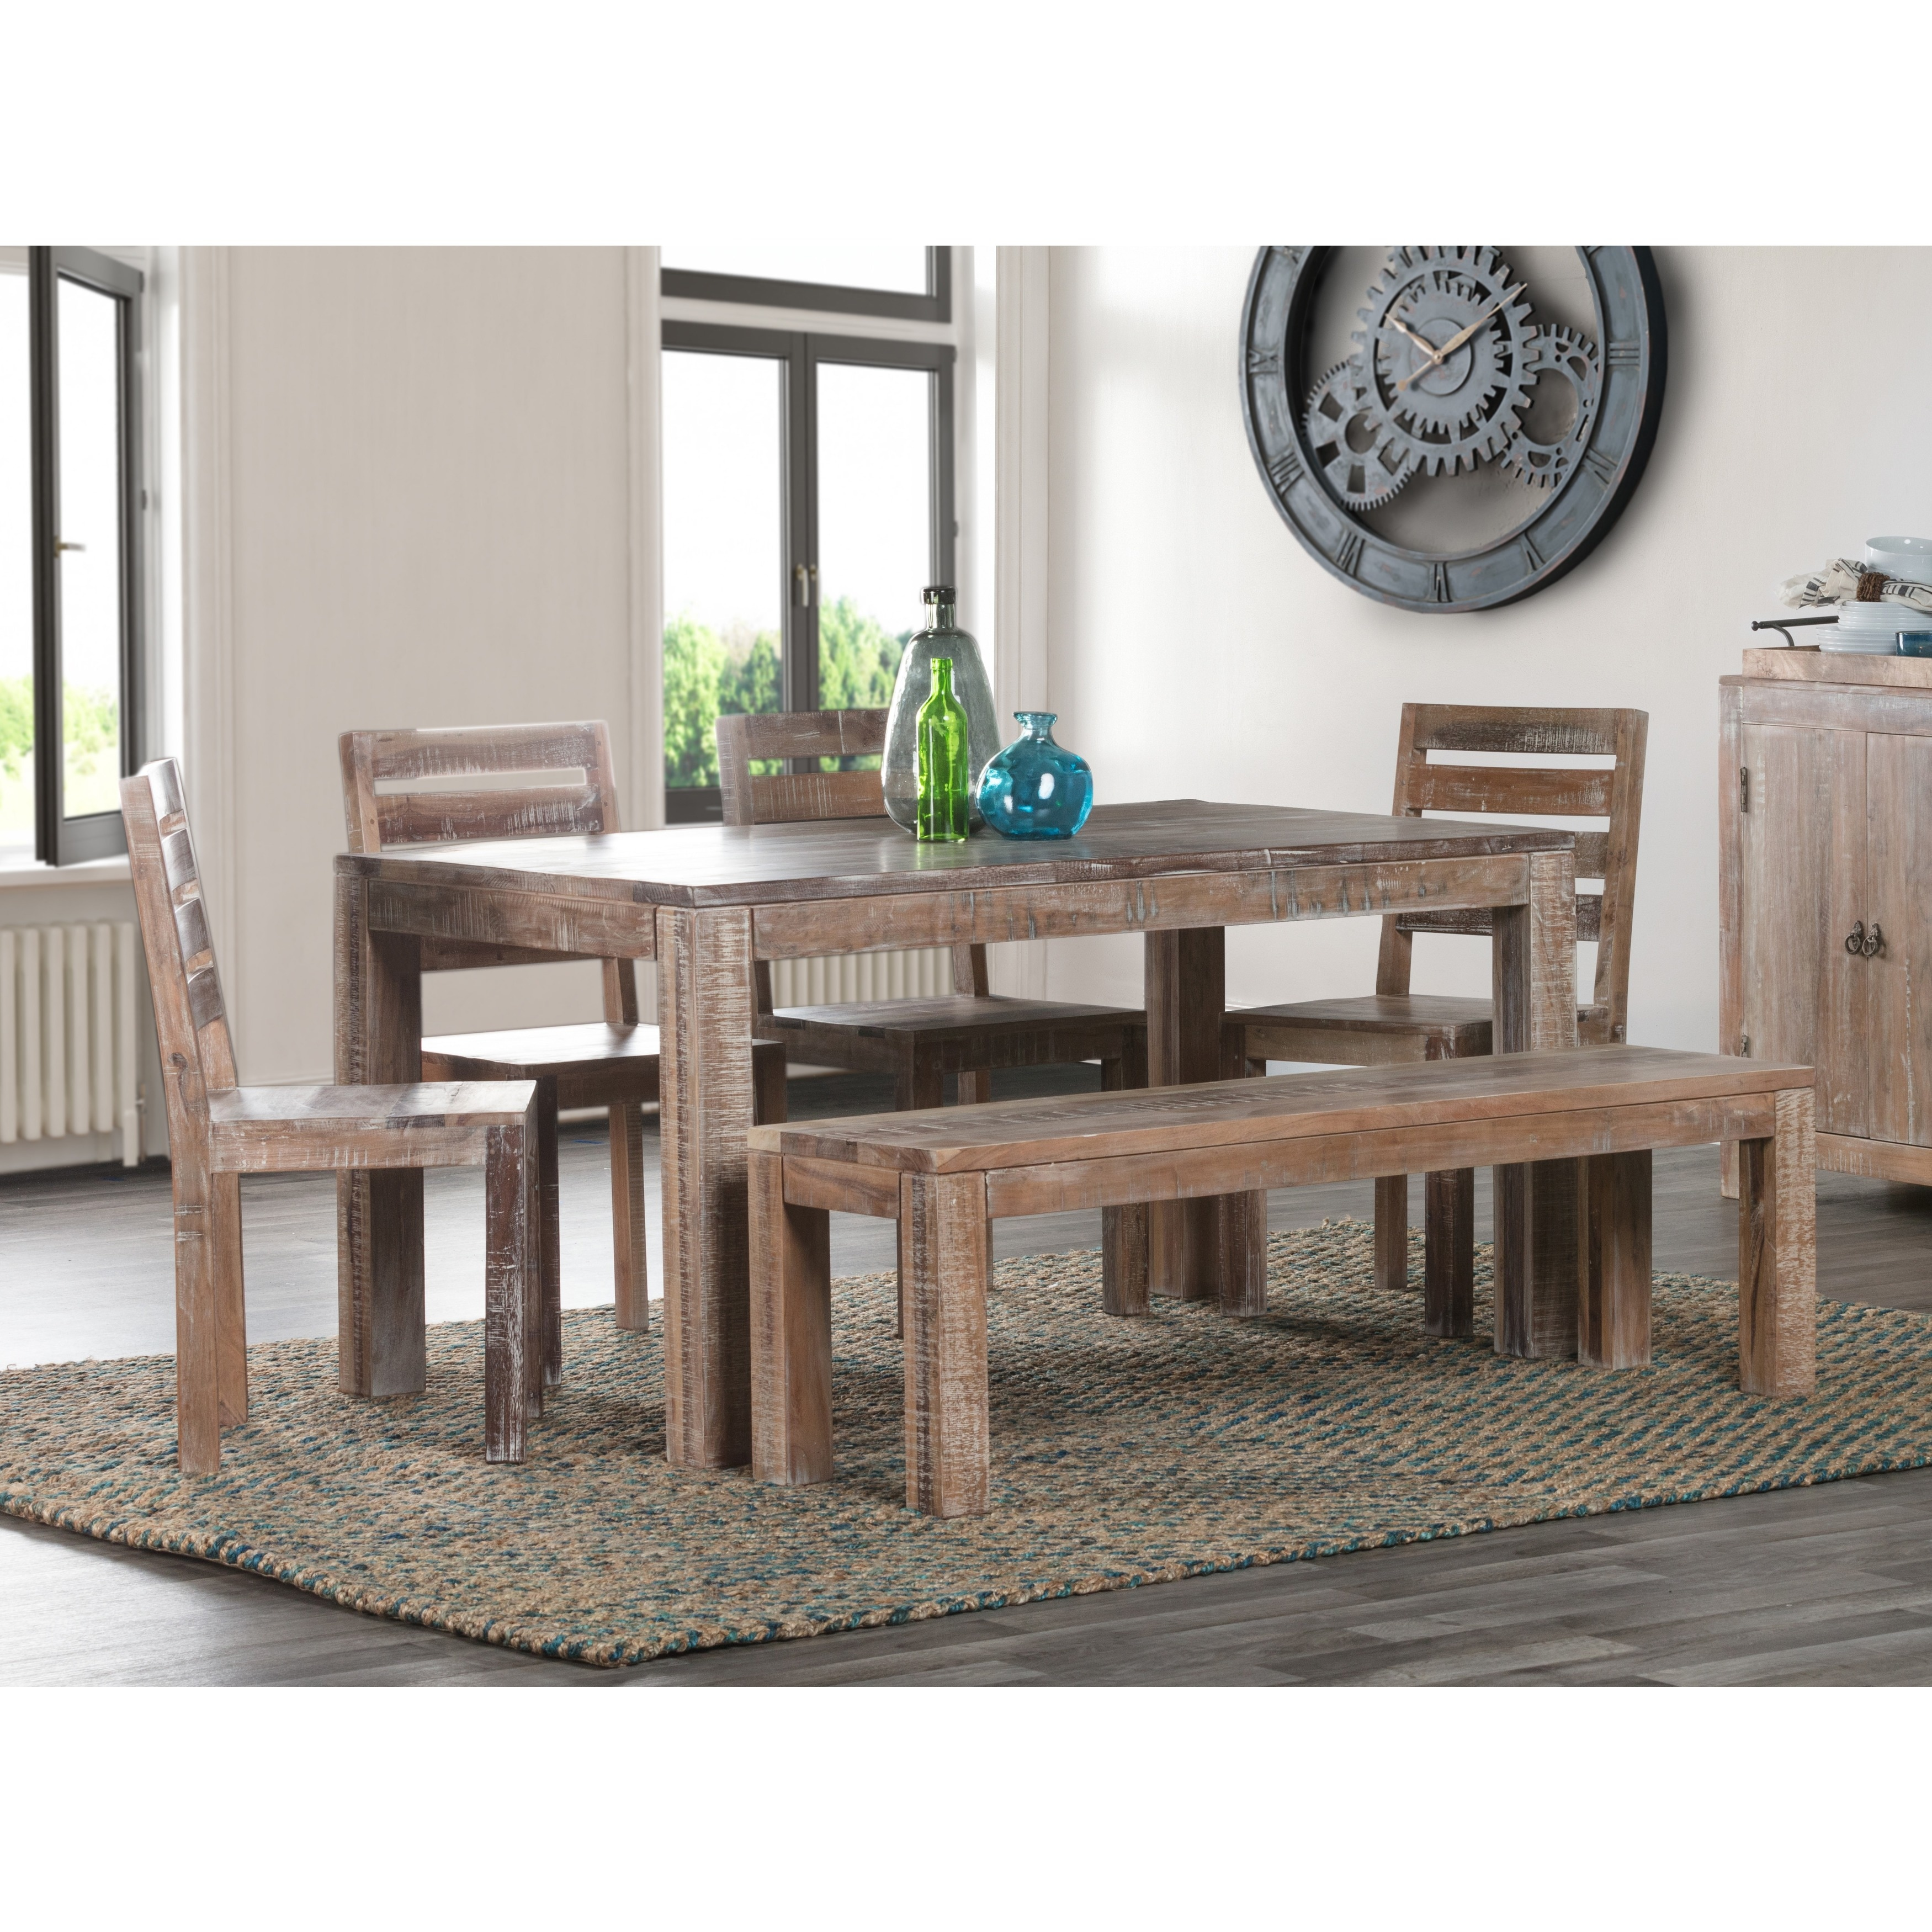 Carbon loft karplus reclaimed wood 60 inch dining table